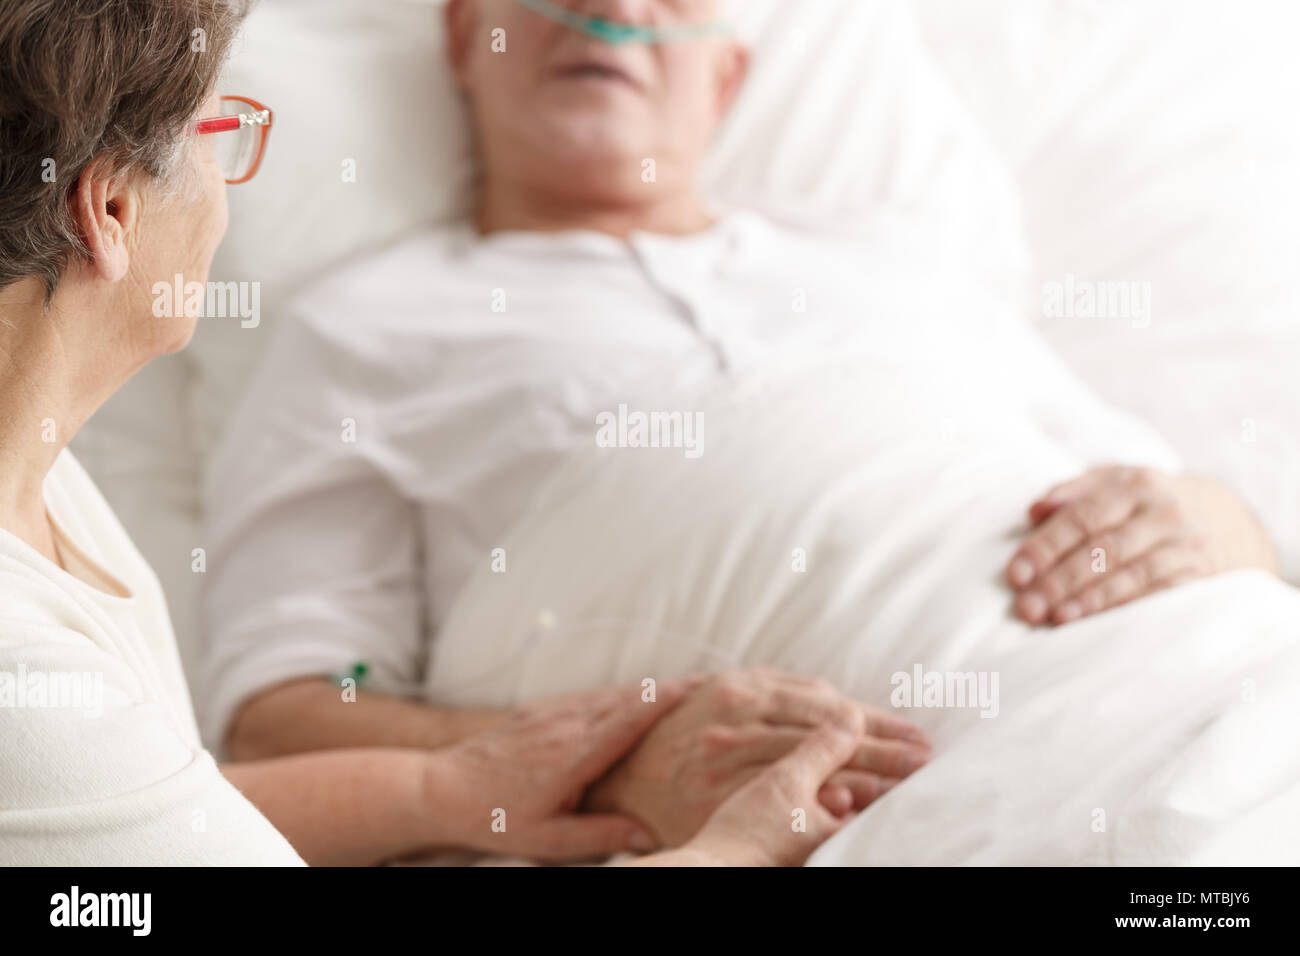 Dying Patient Family Stock Photos & Dying Patient Family Stock